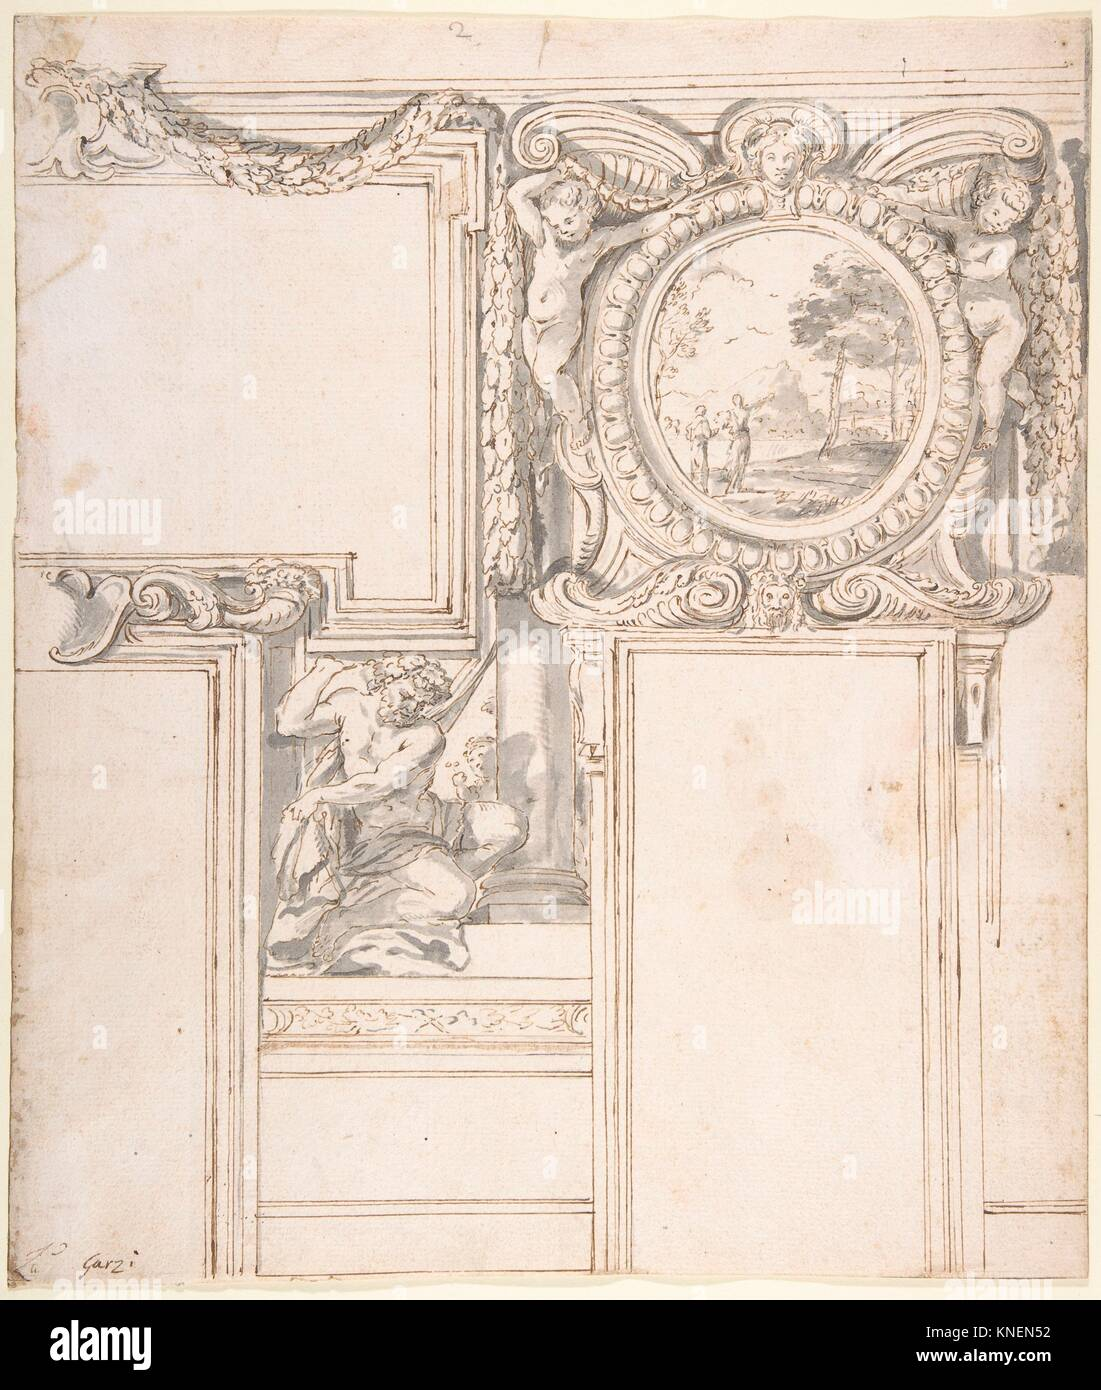 Design Wall Elevation with Stucco and Painted Decorations. Artist: Luigi Garzi (Italian, Pistoia 1638-1721 Rome); - Stock Image